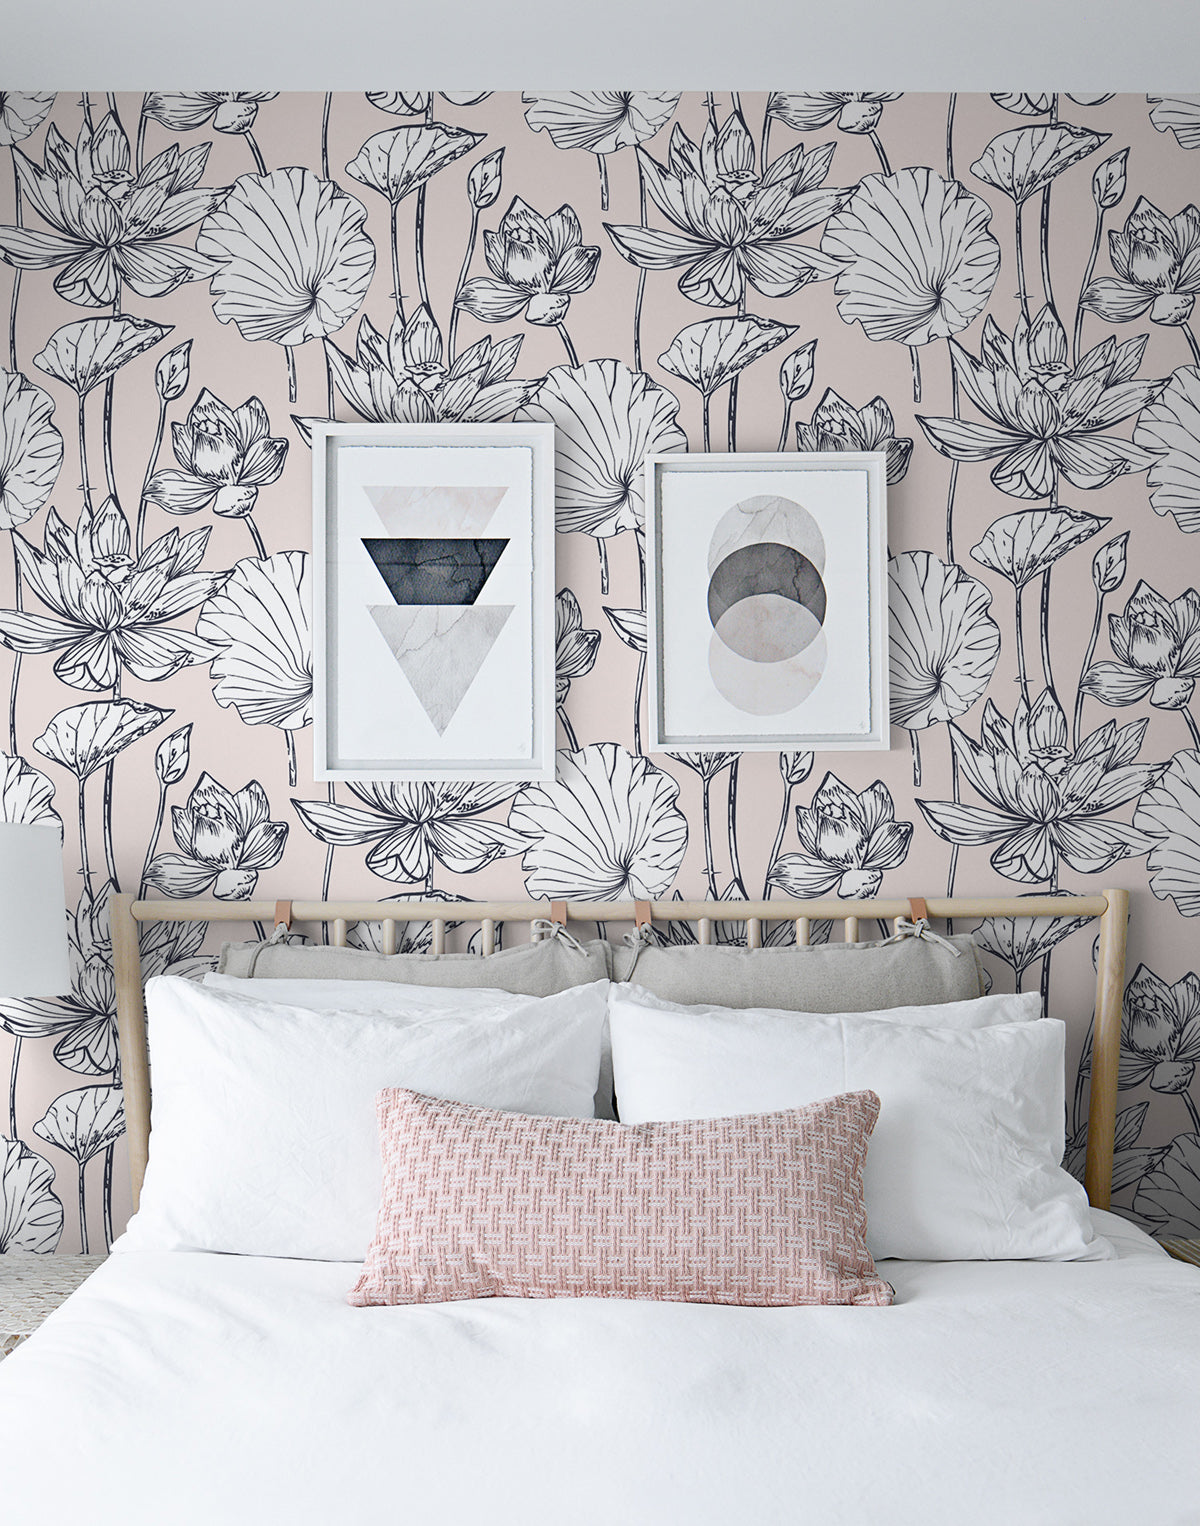 Details about  /3D Lotus Painting I1338 Wallpaper Mural Sefl-adhesive Removable Sticker Wendy